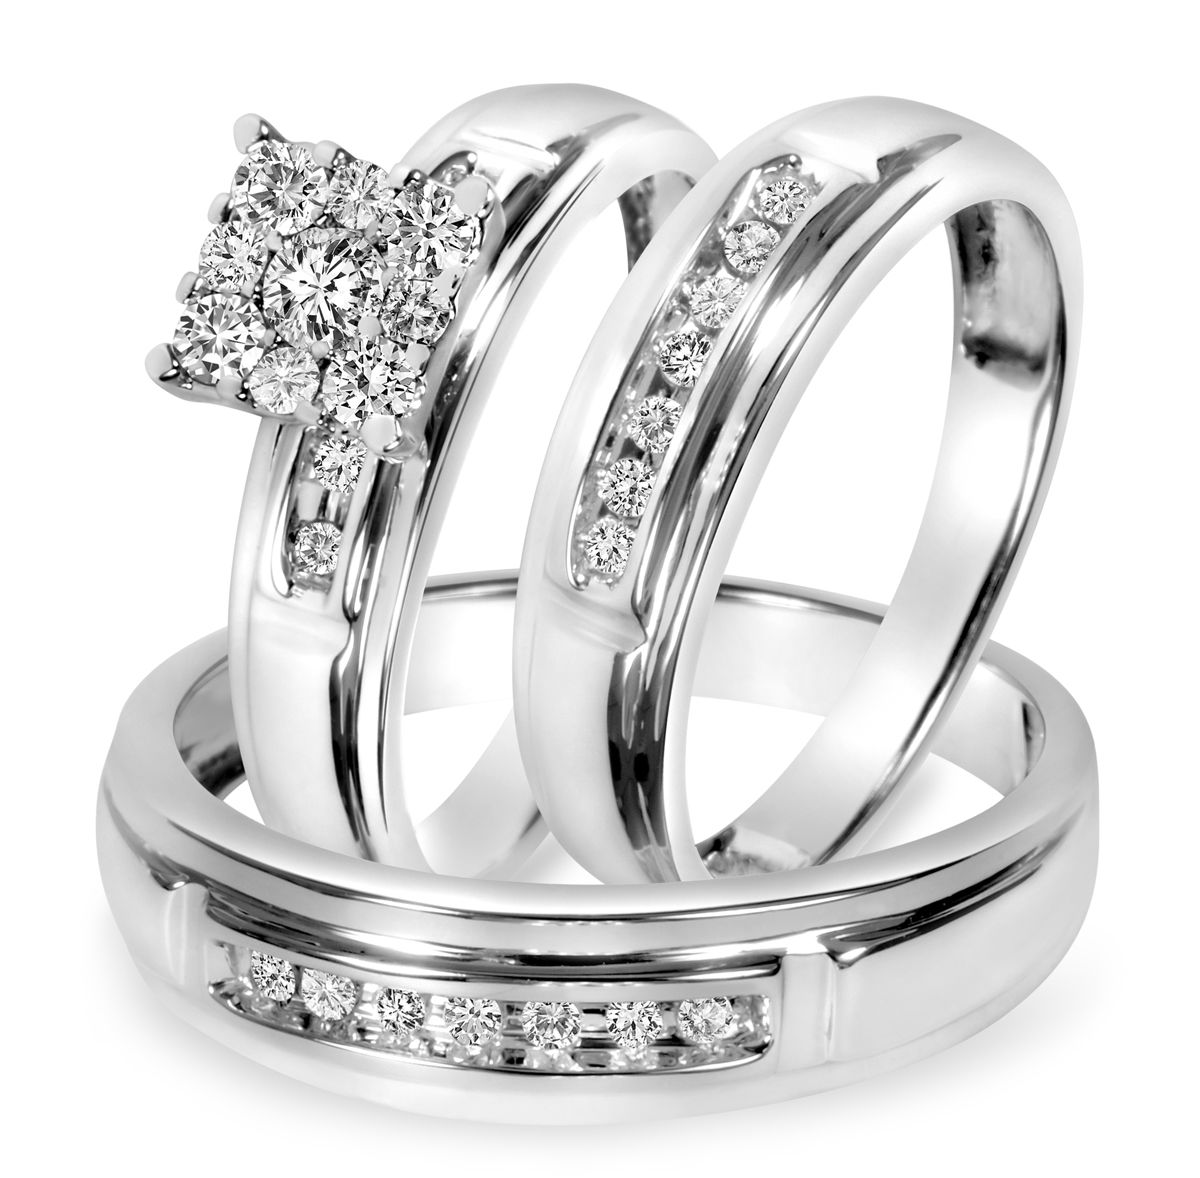 tw diamond trio matching wedding ring set 14k white gold - 14k Gold Wedding Ring Sets